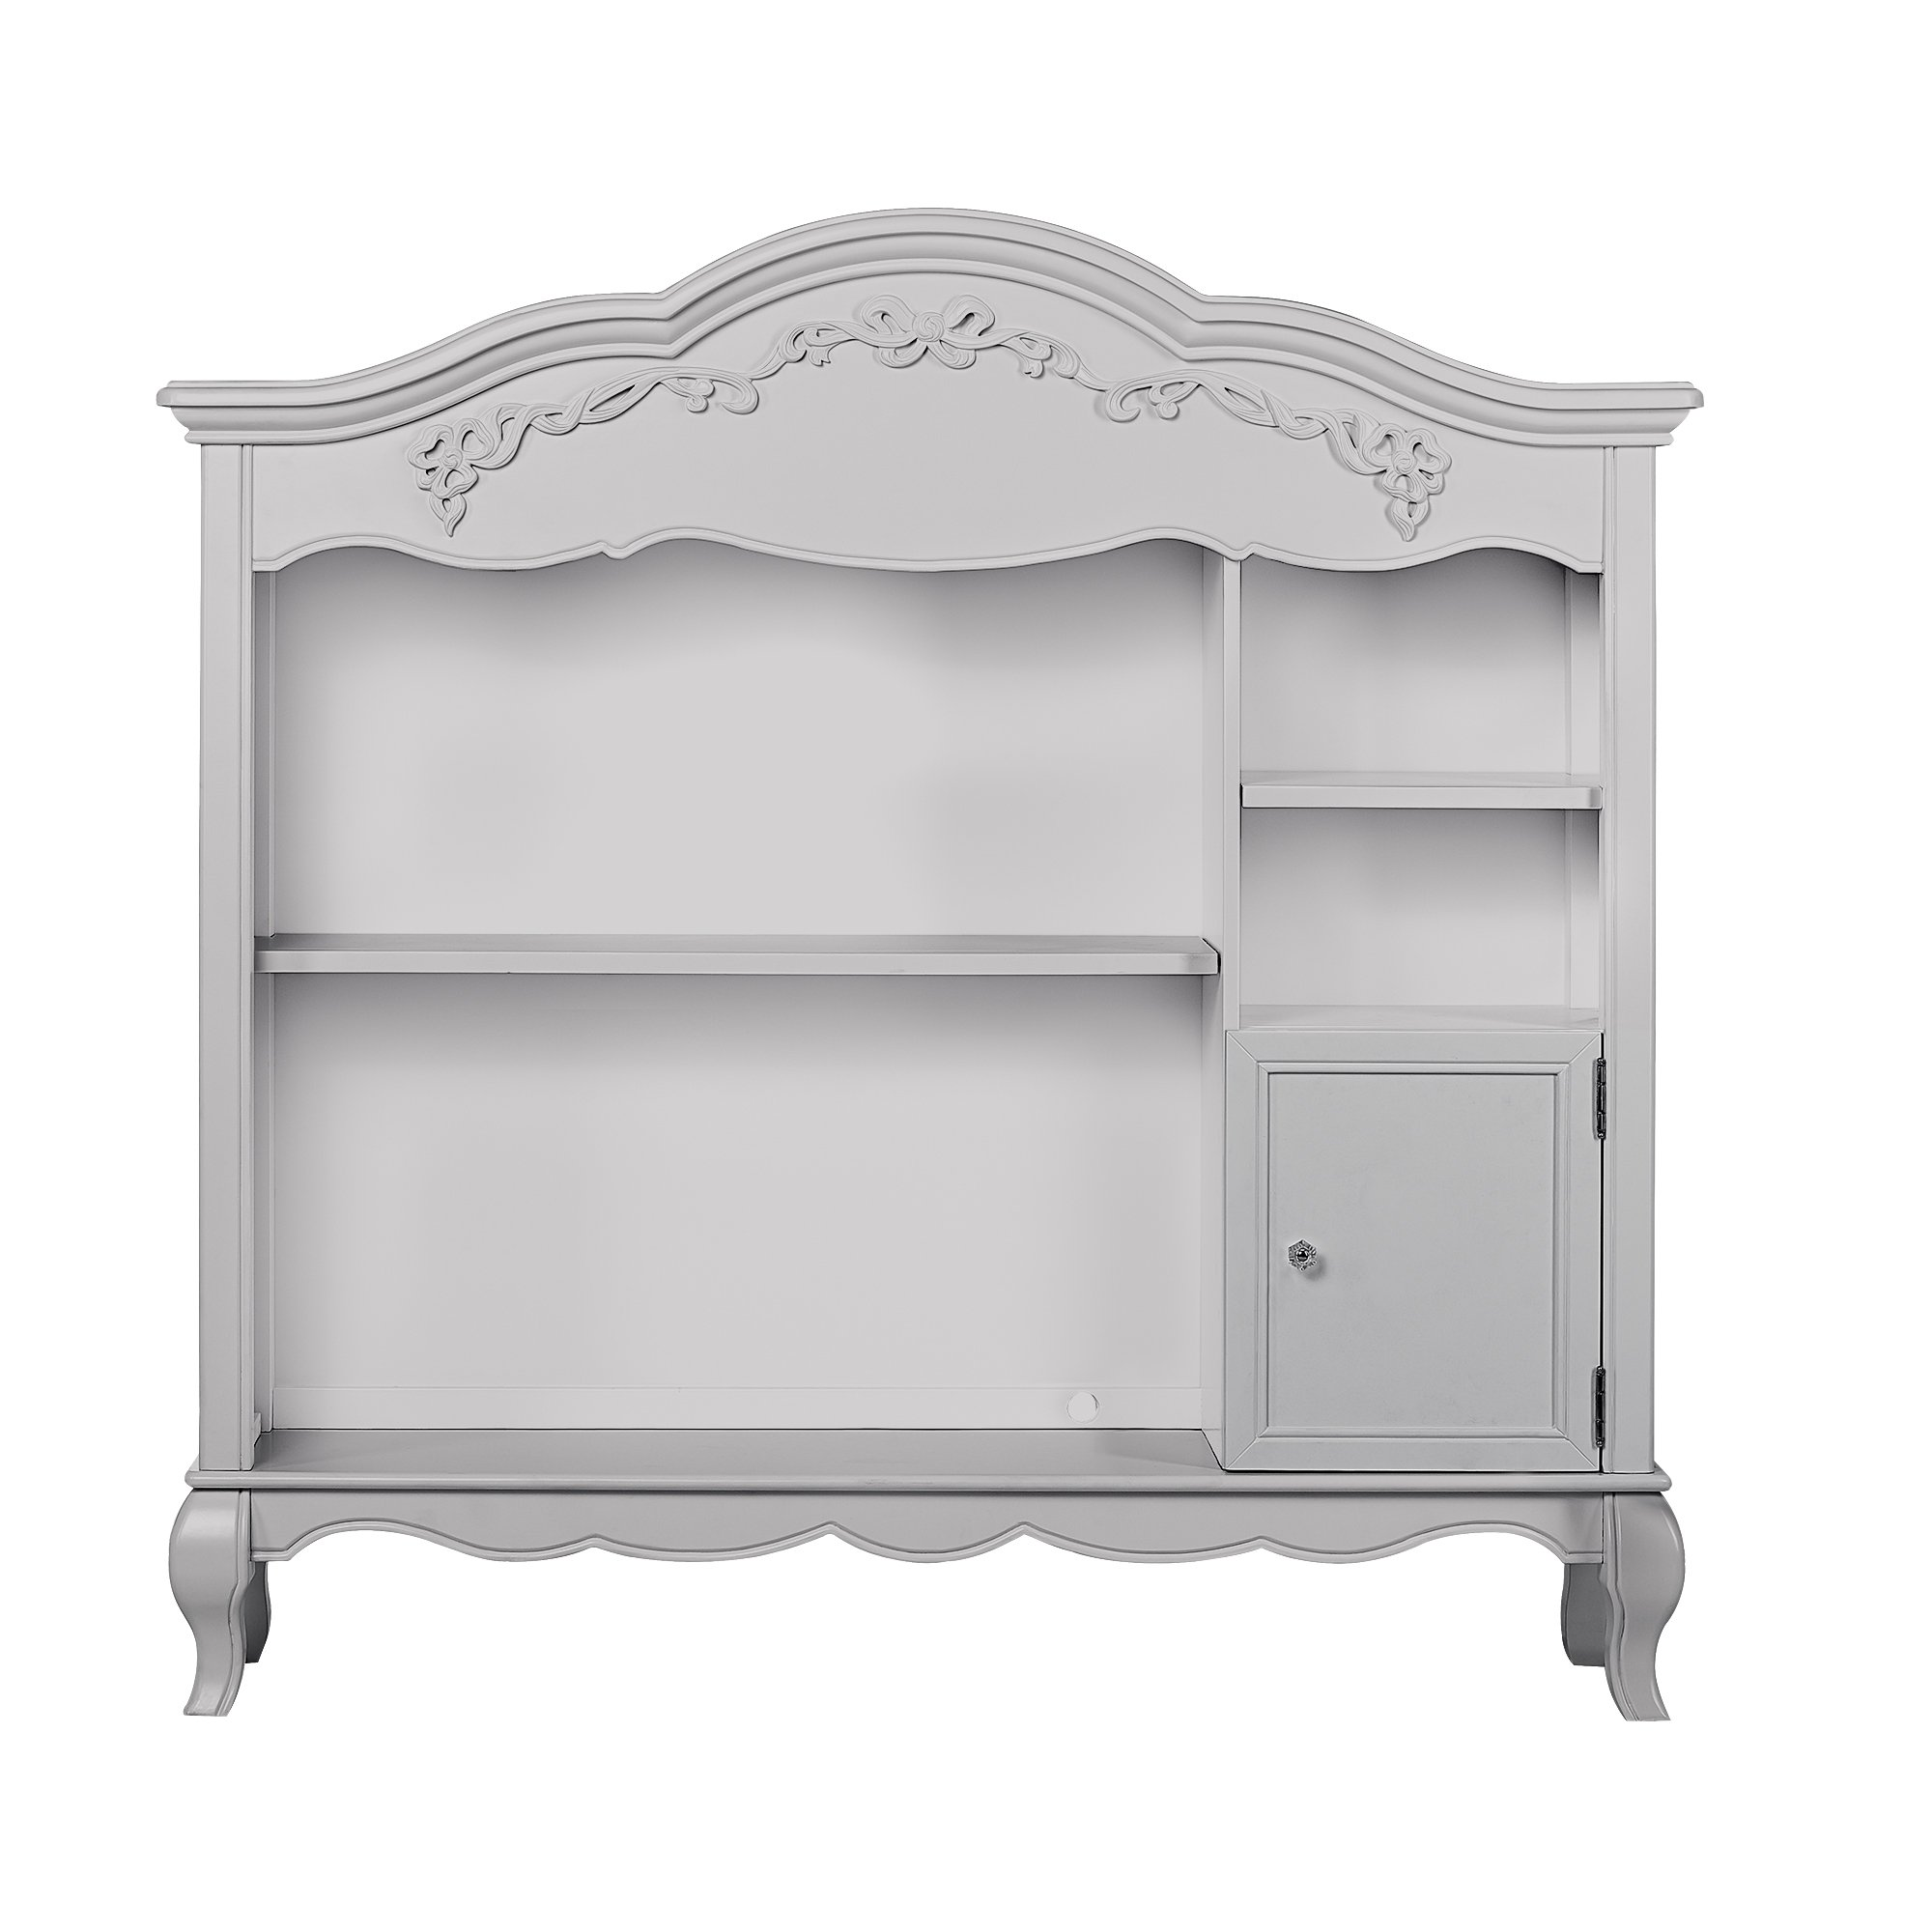 Evolur Aurora Bookcase in Akoya Grey Pearl/Silver Mist by Evolur